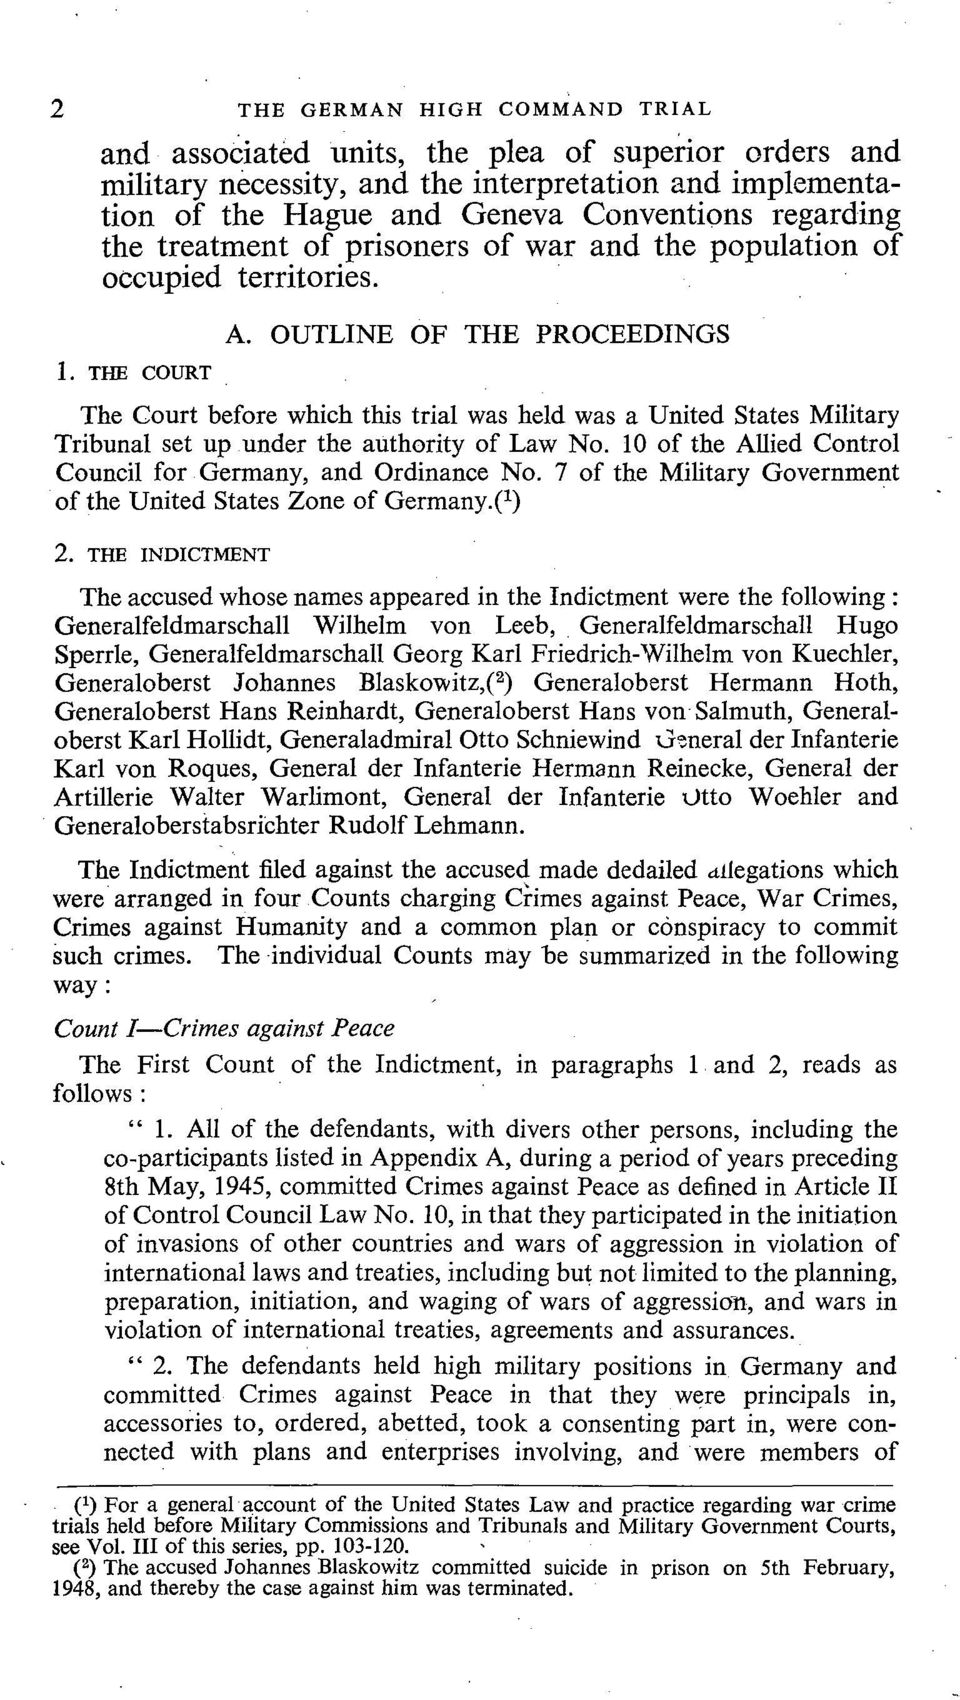 OUTLINE OF THE PROCEEDINGS The Court before which this trial was held was a United States Military Tribunal set up under the authority of Law No.